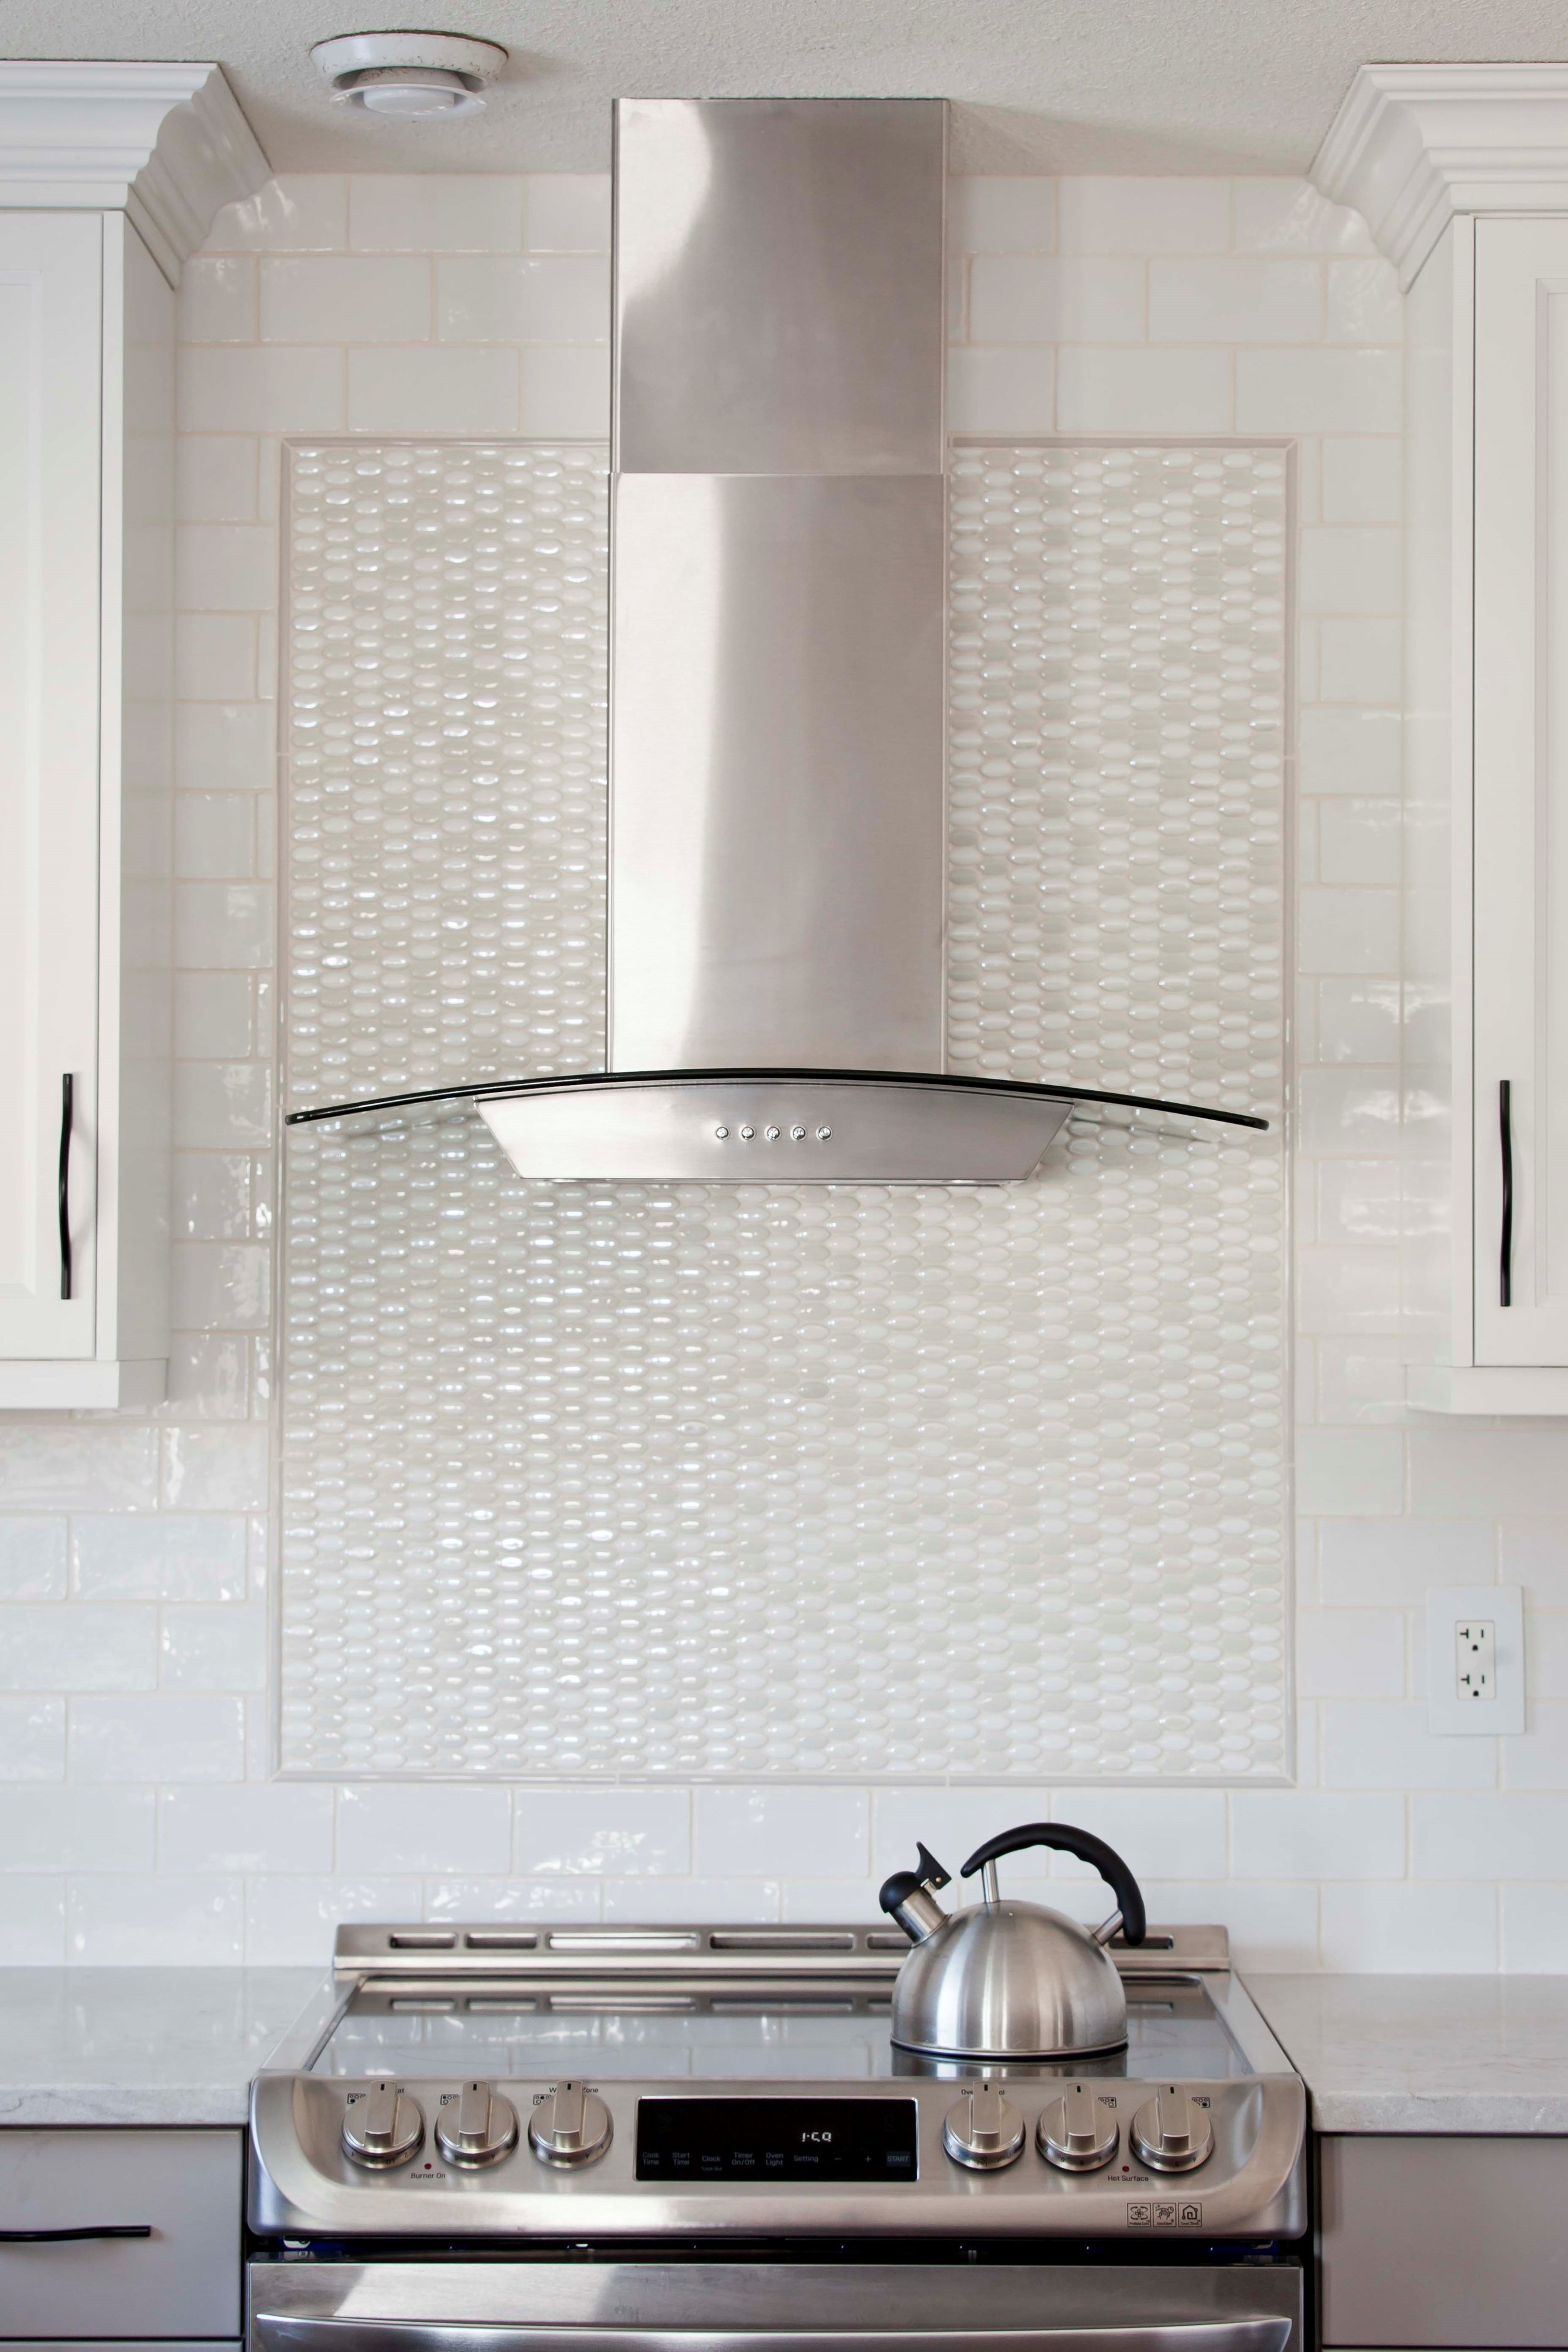 With feature tile work, the cooking area becomes a focal point in the kitchen.